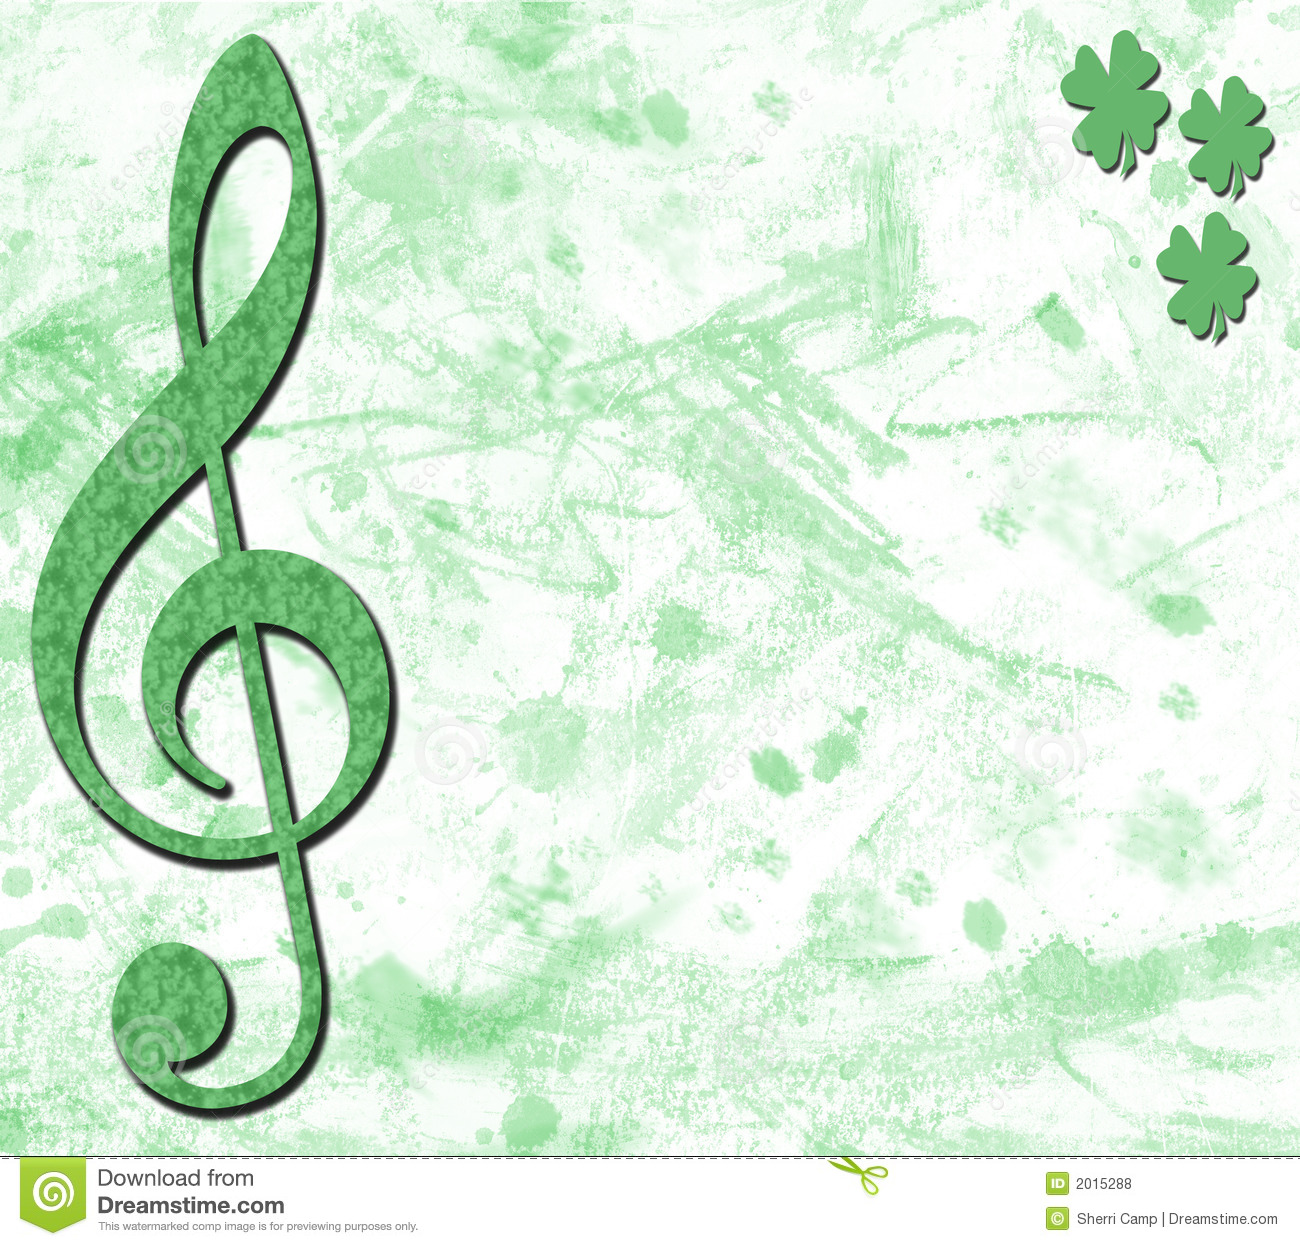 Image Result For Royalty Free Irish Music Download